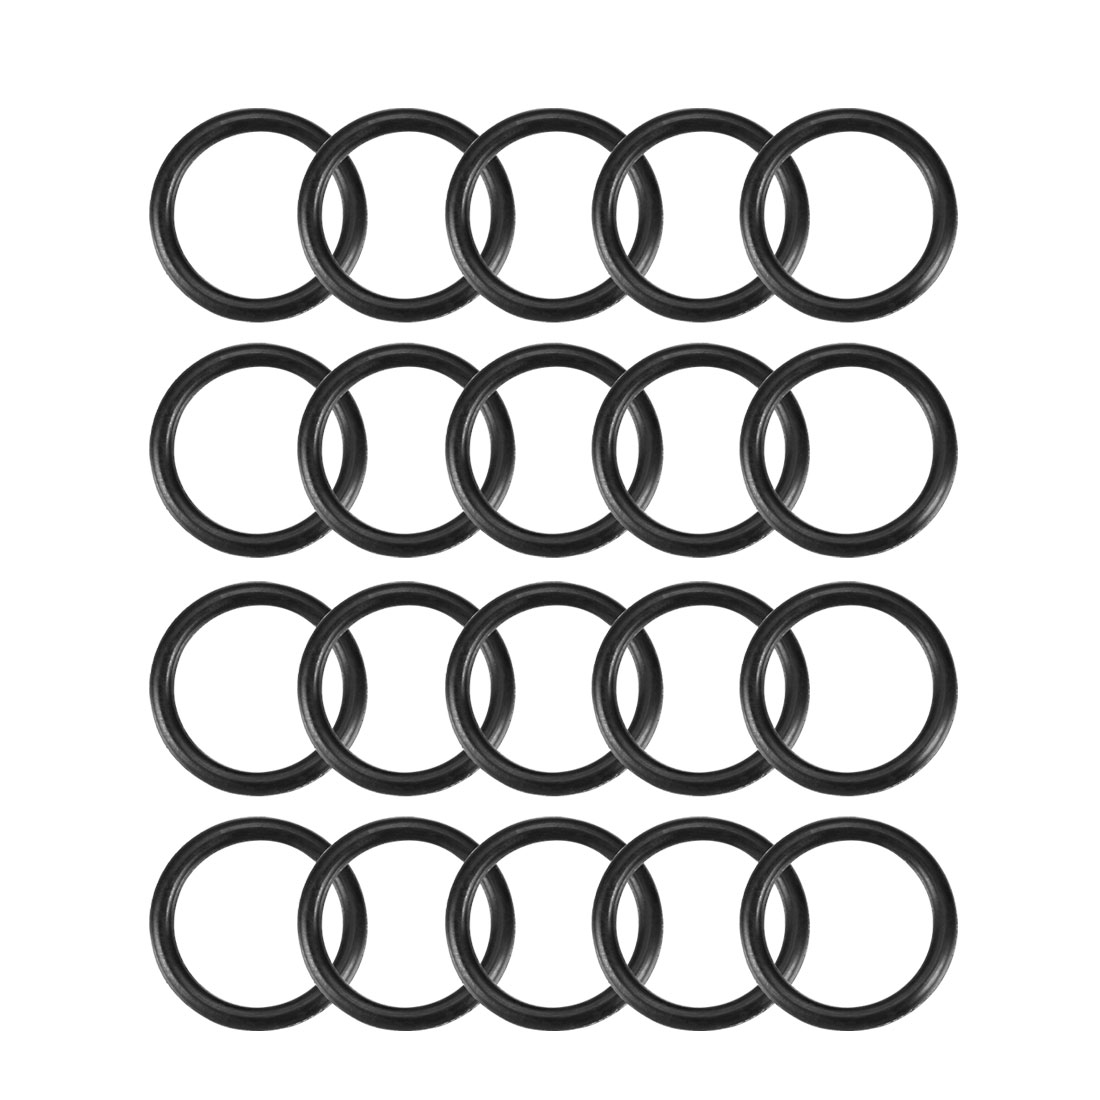 20 Pcs Black 17mm x 2mm NBR Oil Resistant Sealing Ring O-shape Grommets